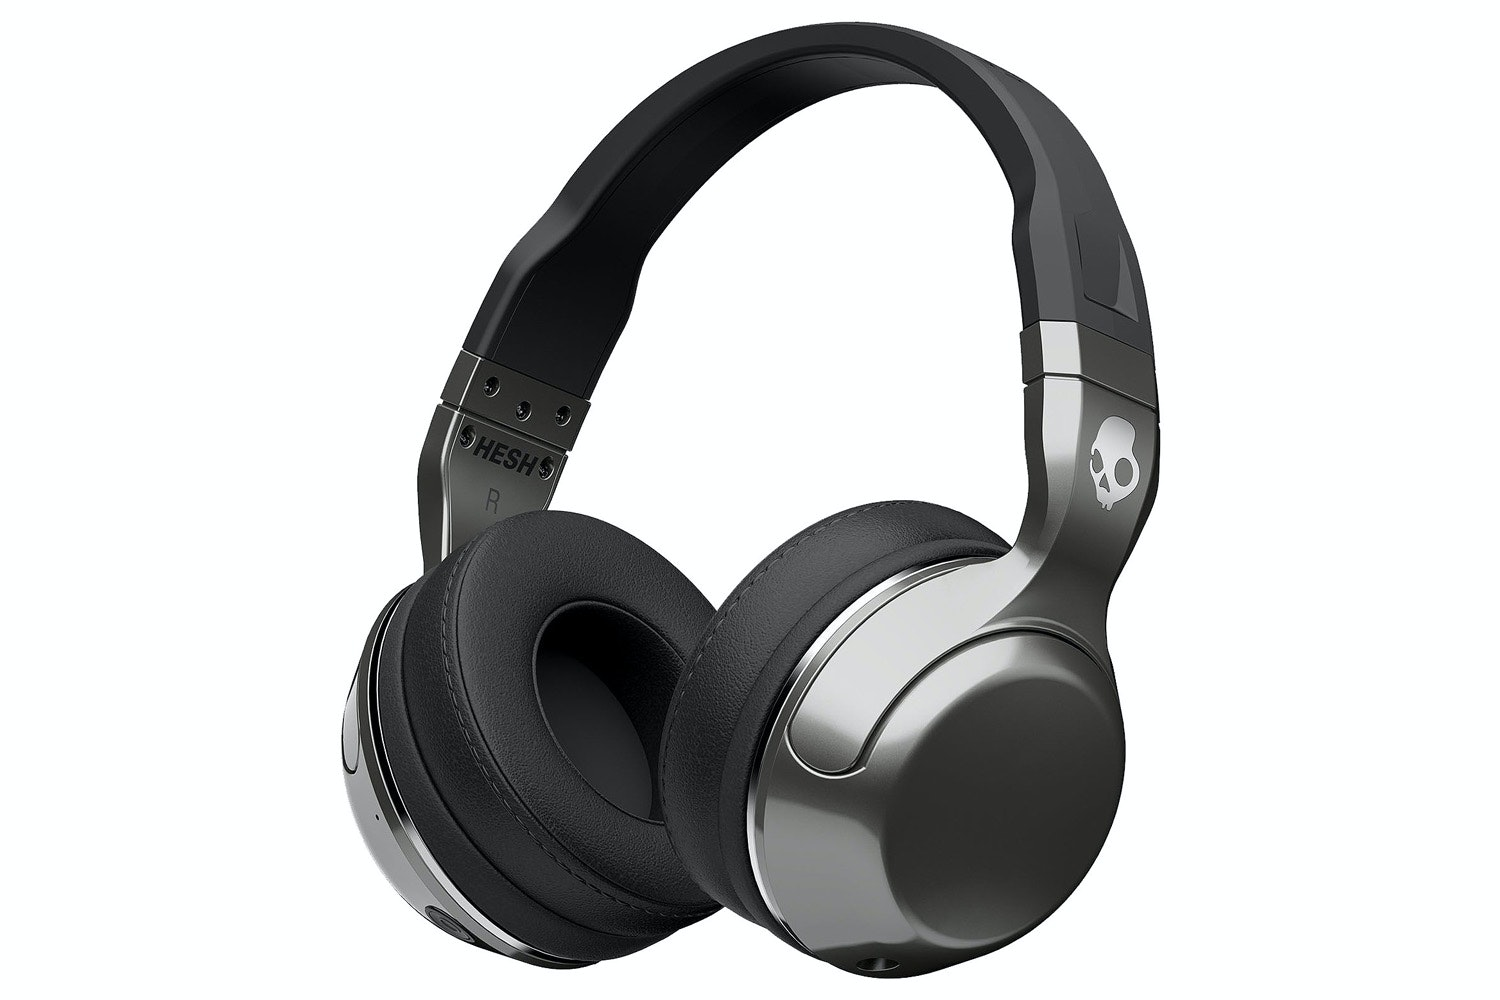 Skullcandy Hesh 2 Bluetooth Wireless Headphones | Black